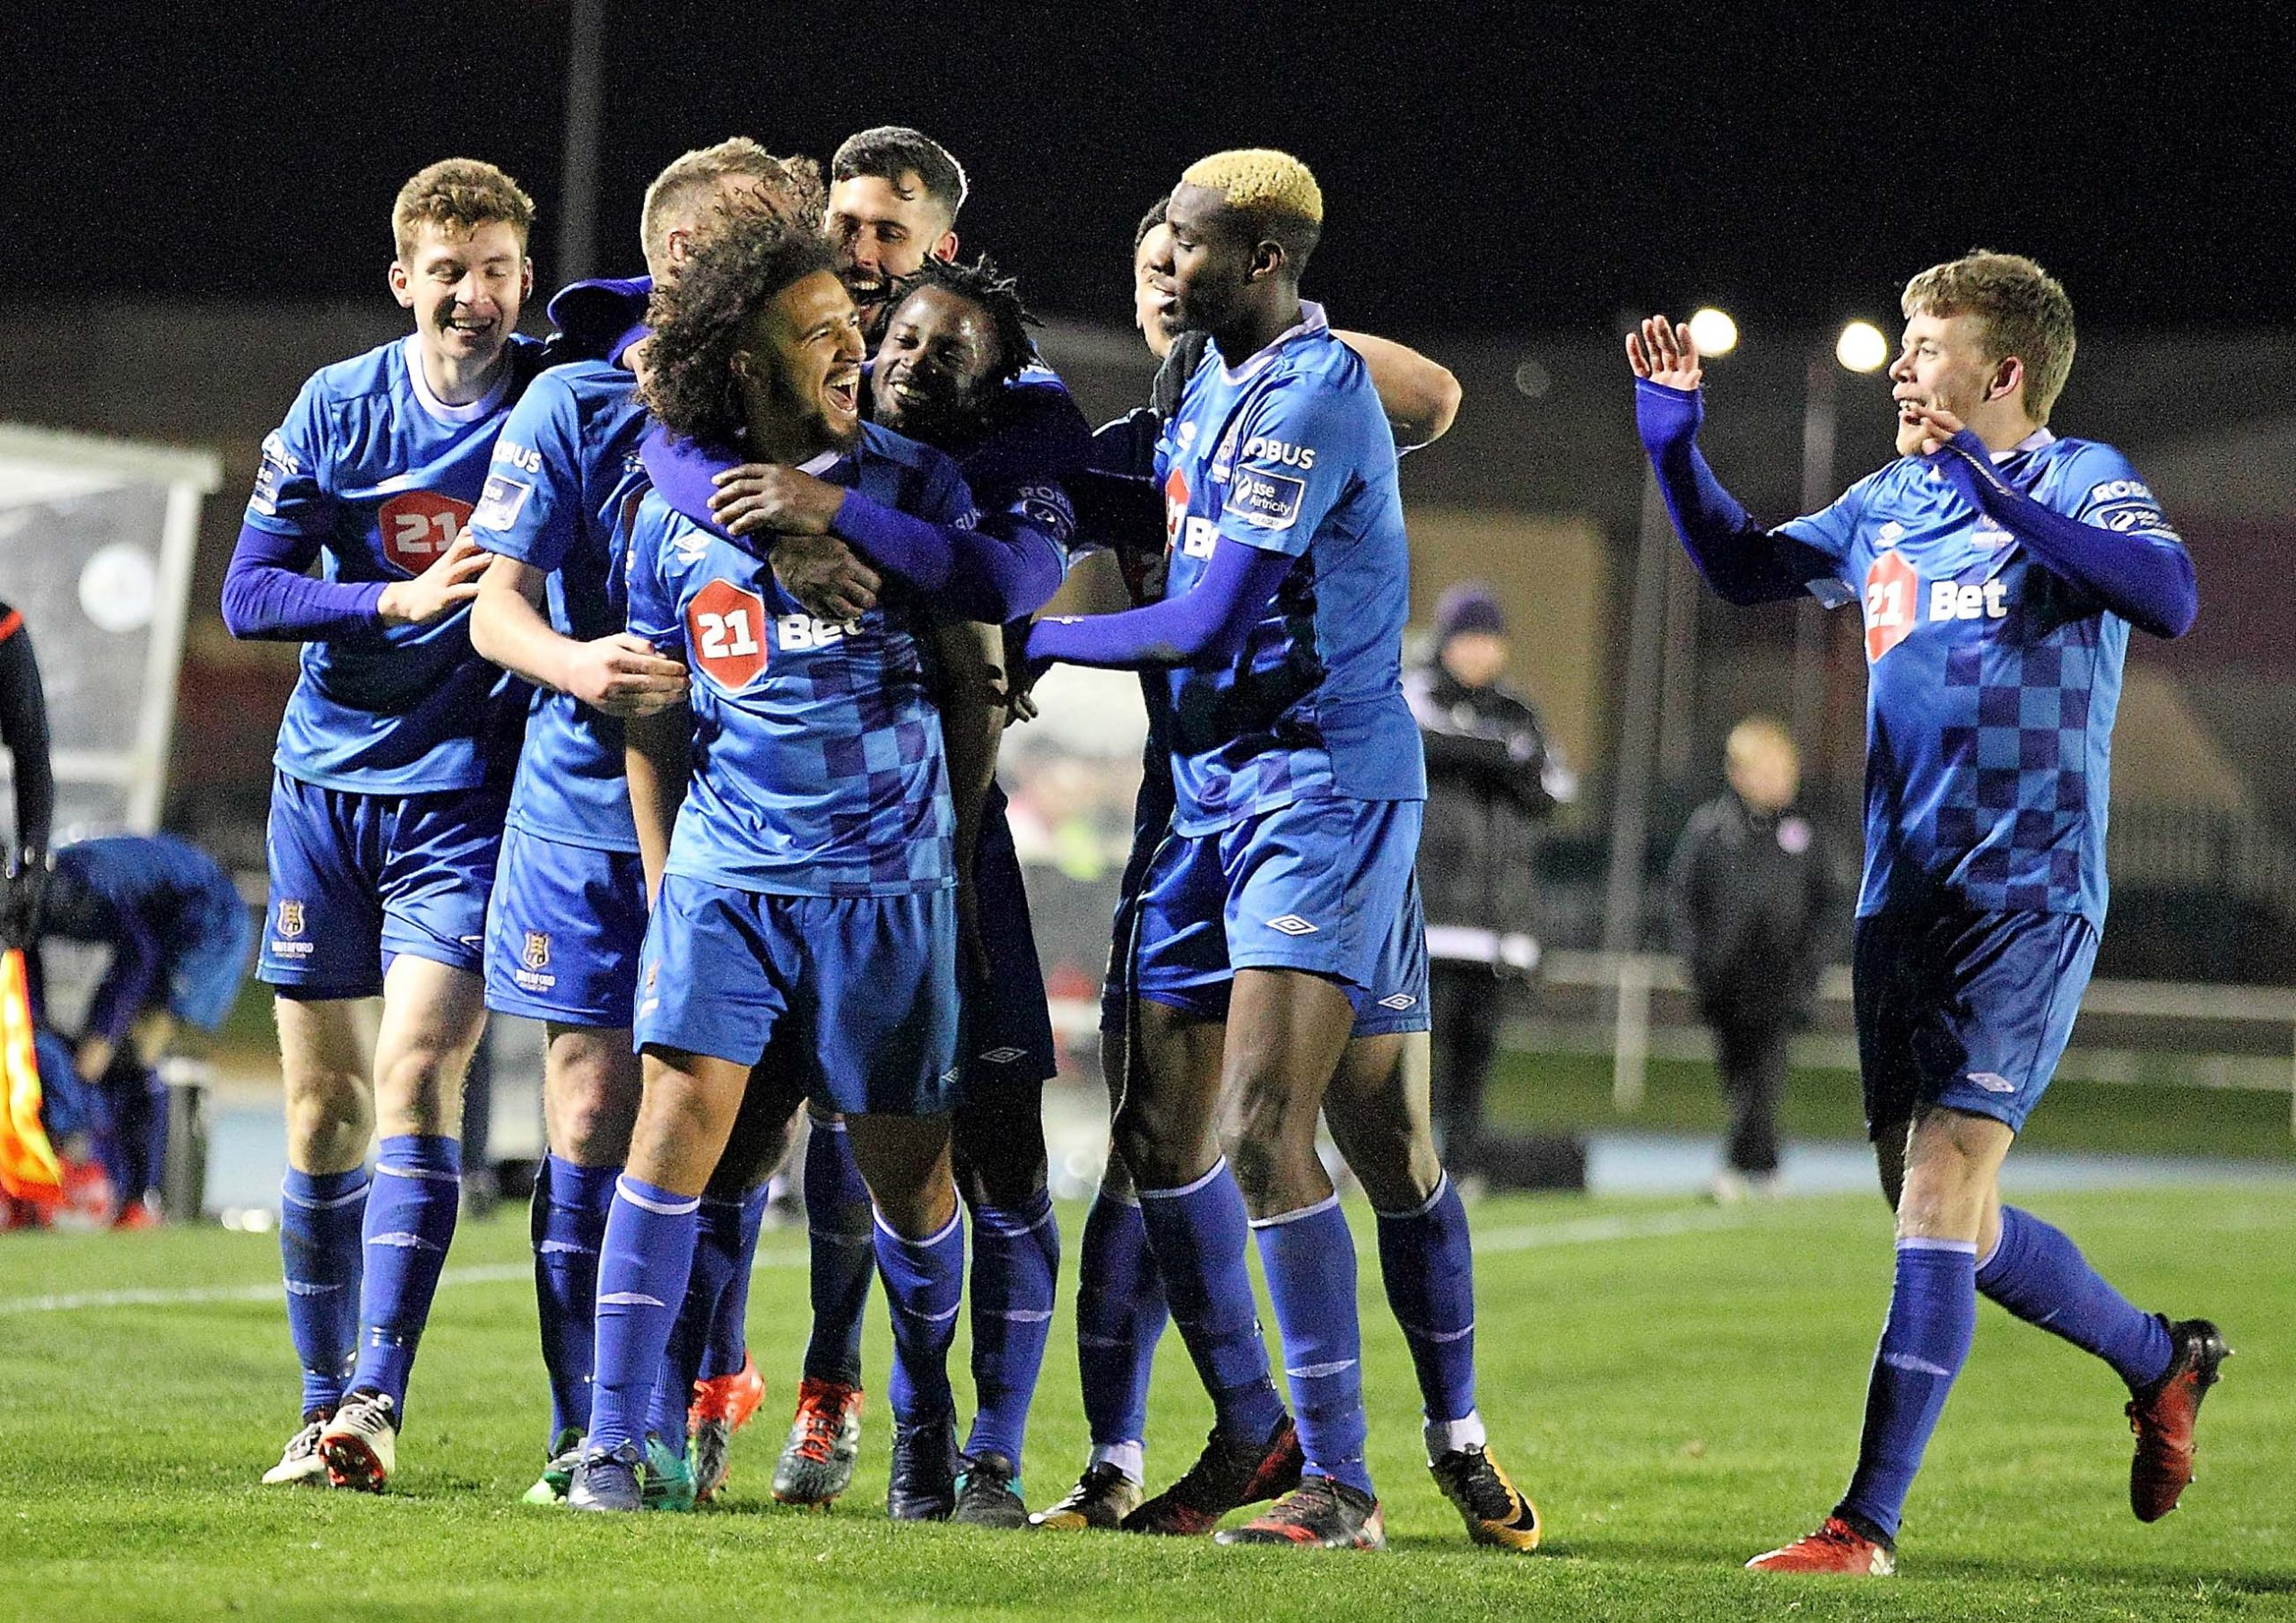 Blues hoping to continue their Cup run this evening with away tie against Drogheda